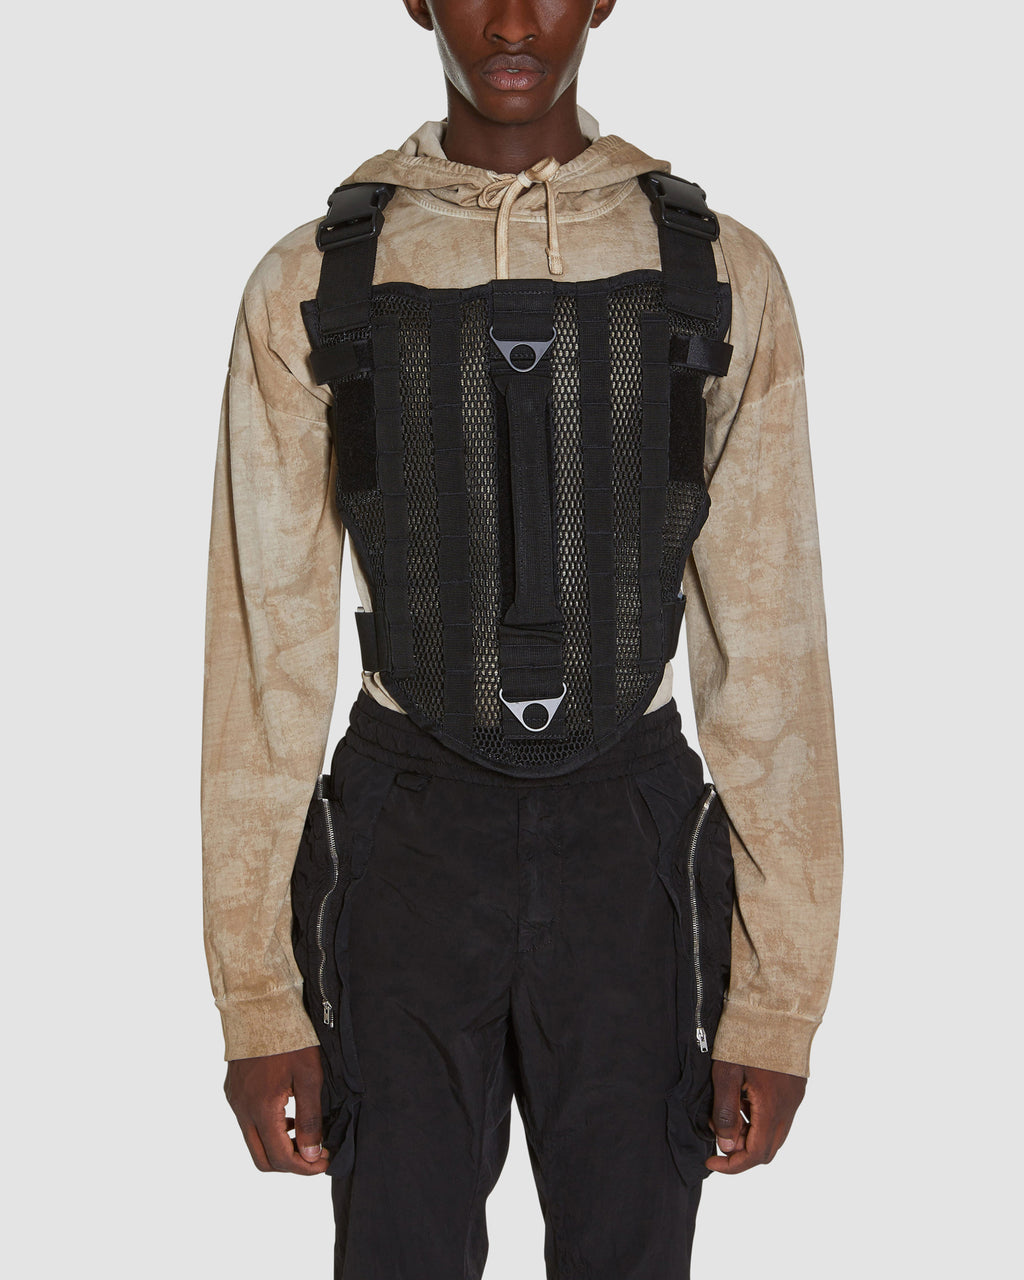 NEW TACTICAL VEST PRE-ORDER